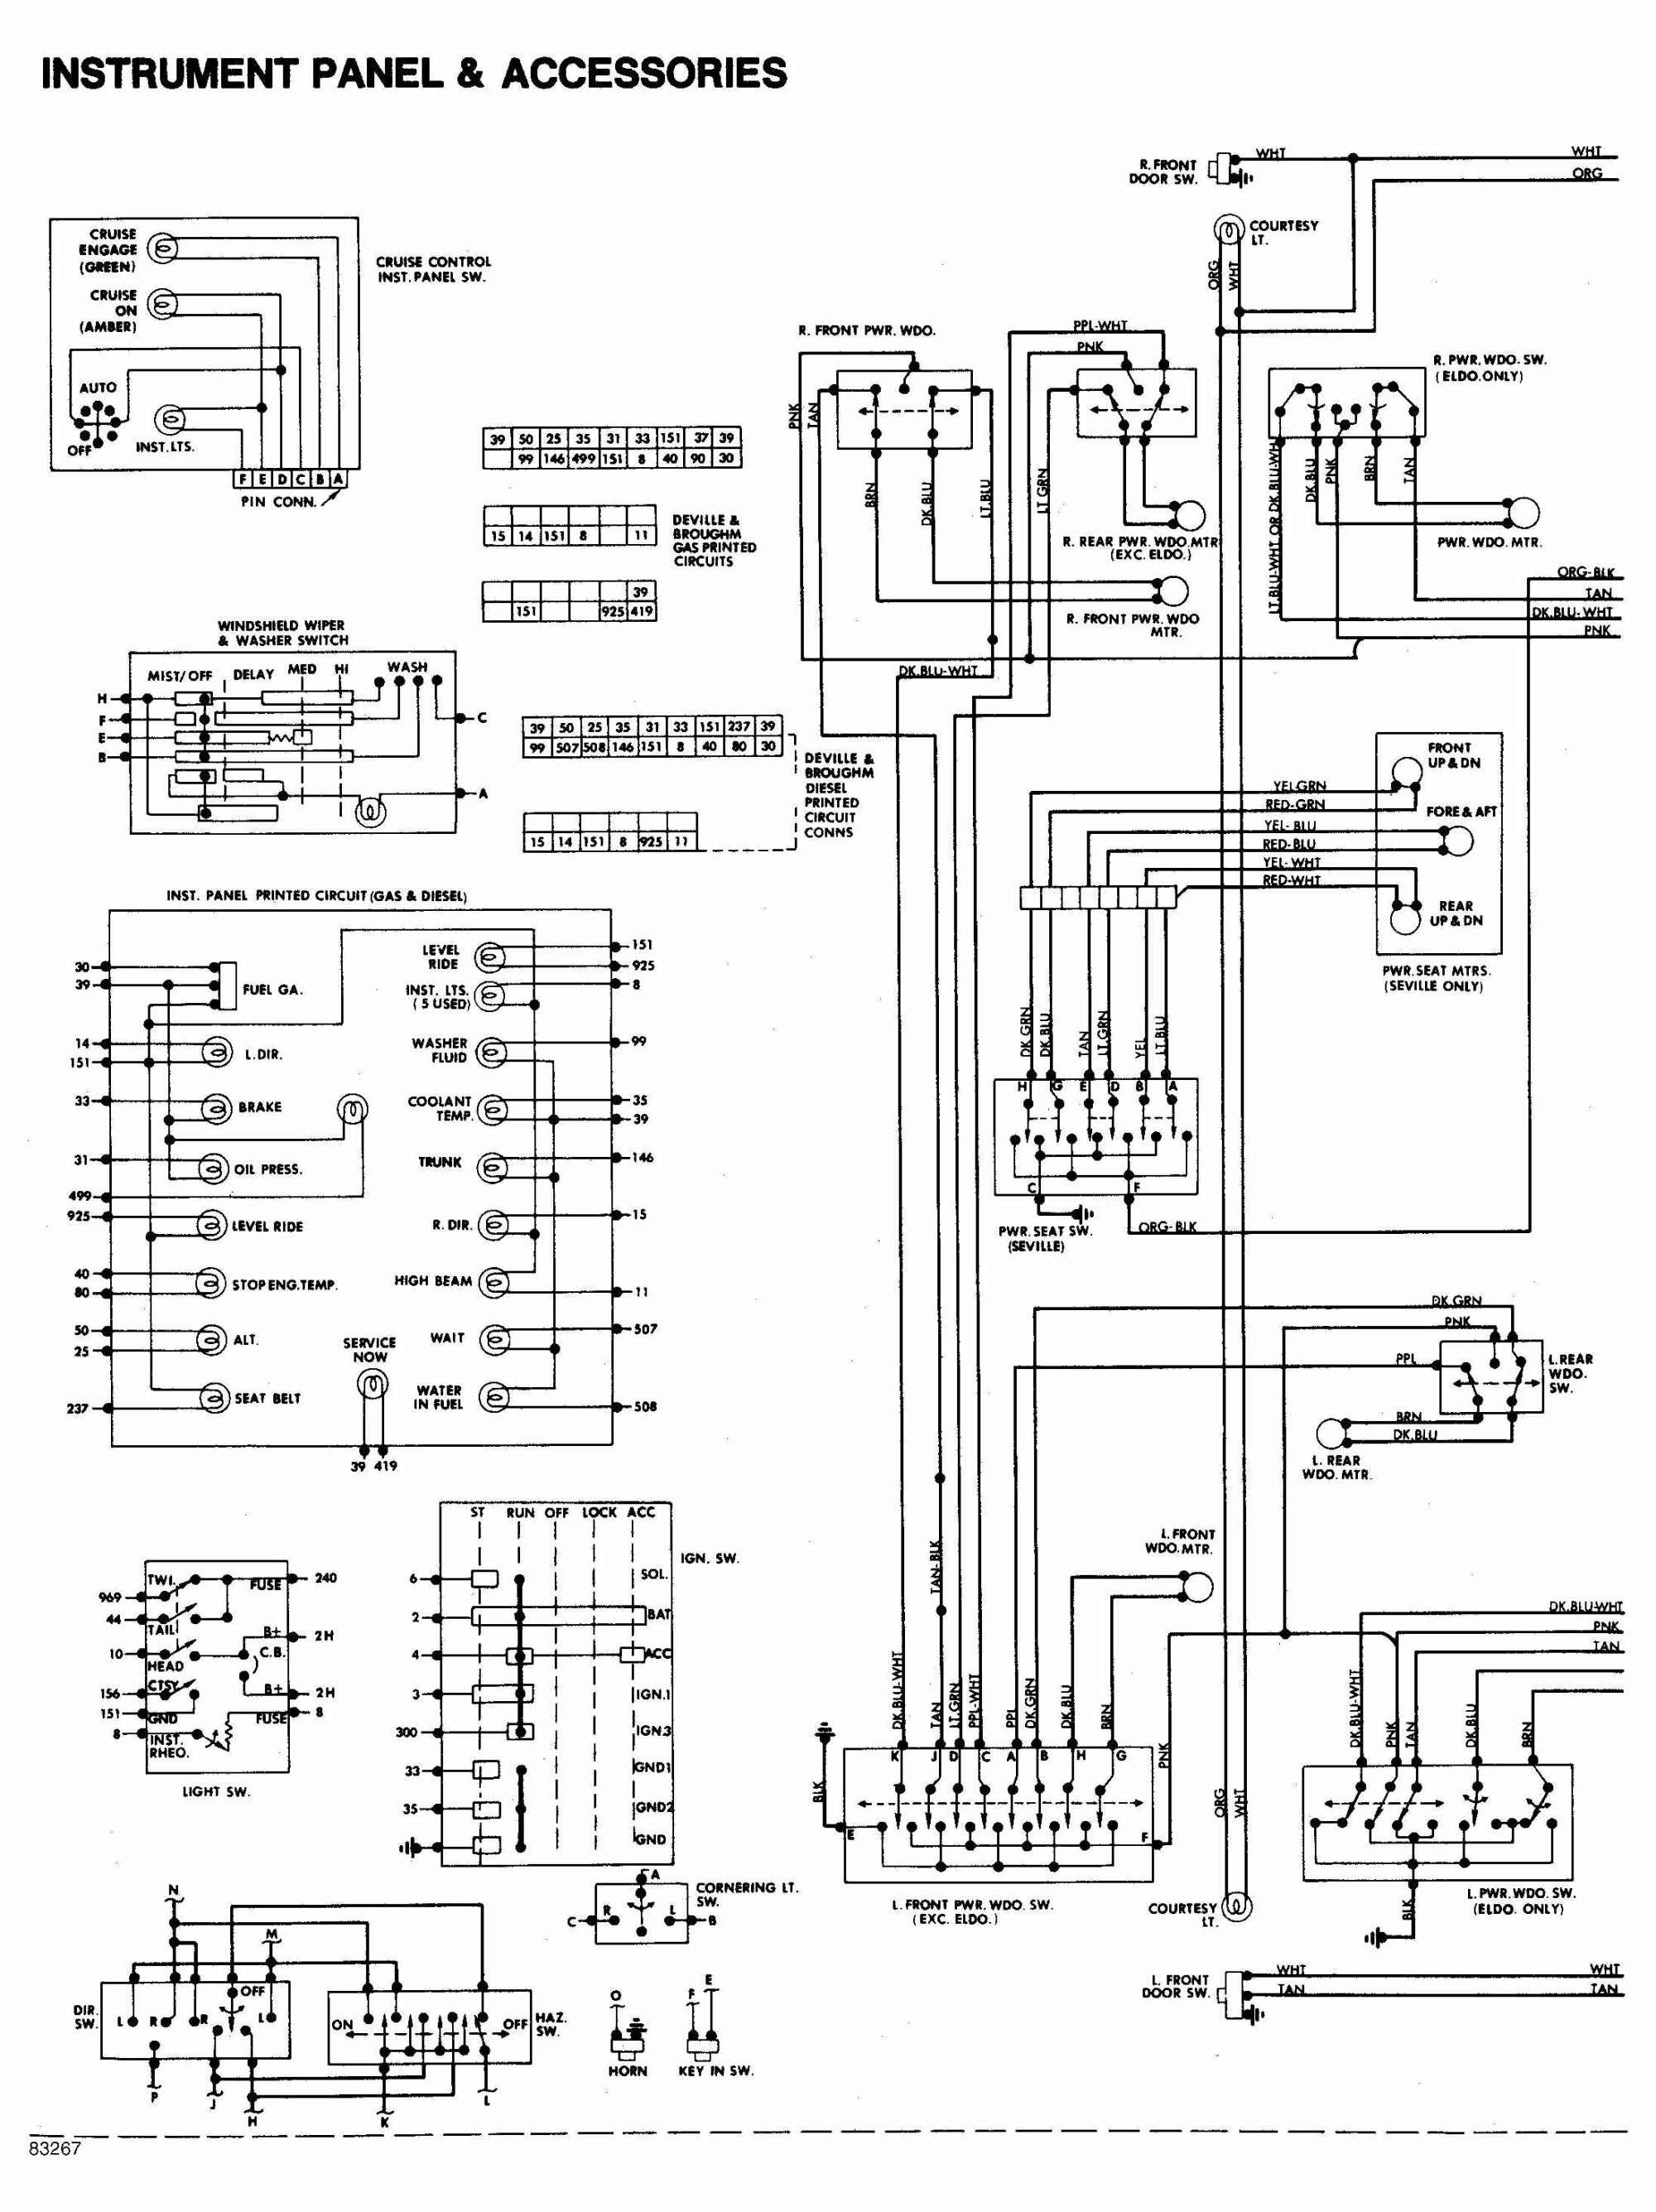 hight resolution of 1995 cadillac wiring diagrams wiring diagram schema 1995 cadillac fleetwood wiring diagram 1995 cadillac deville wiring